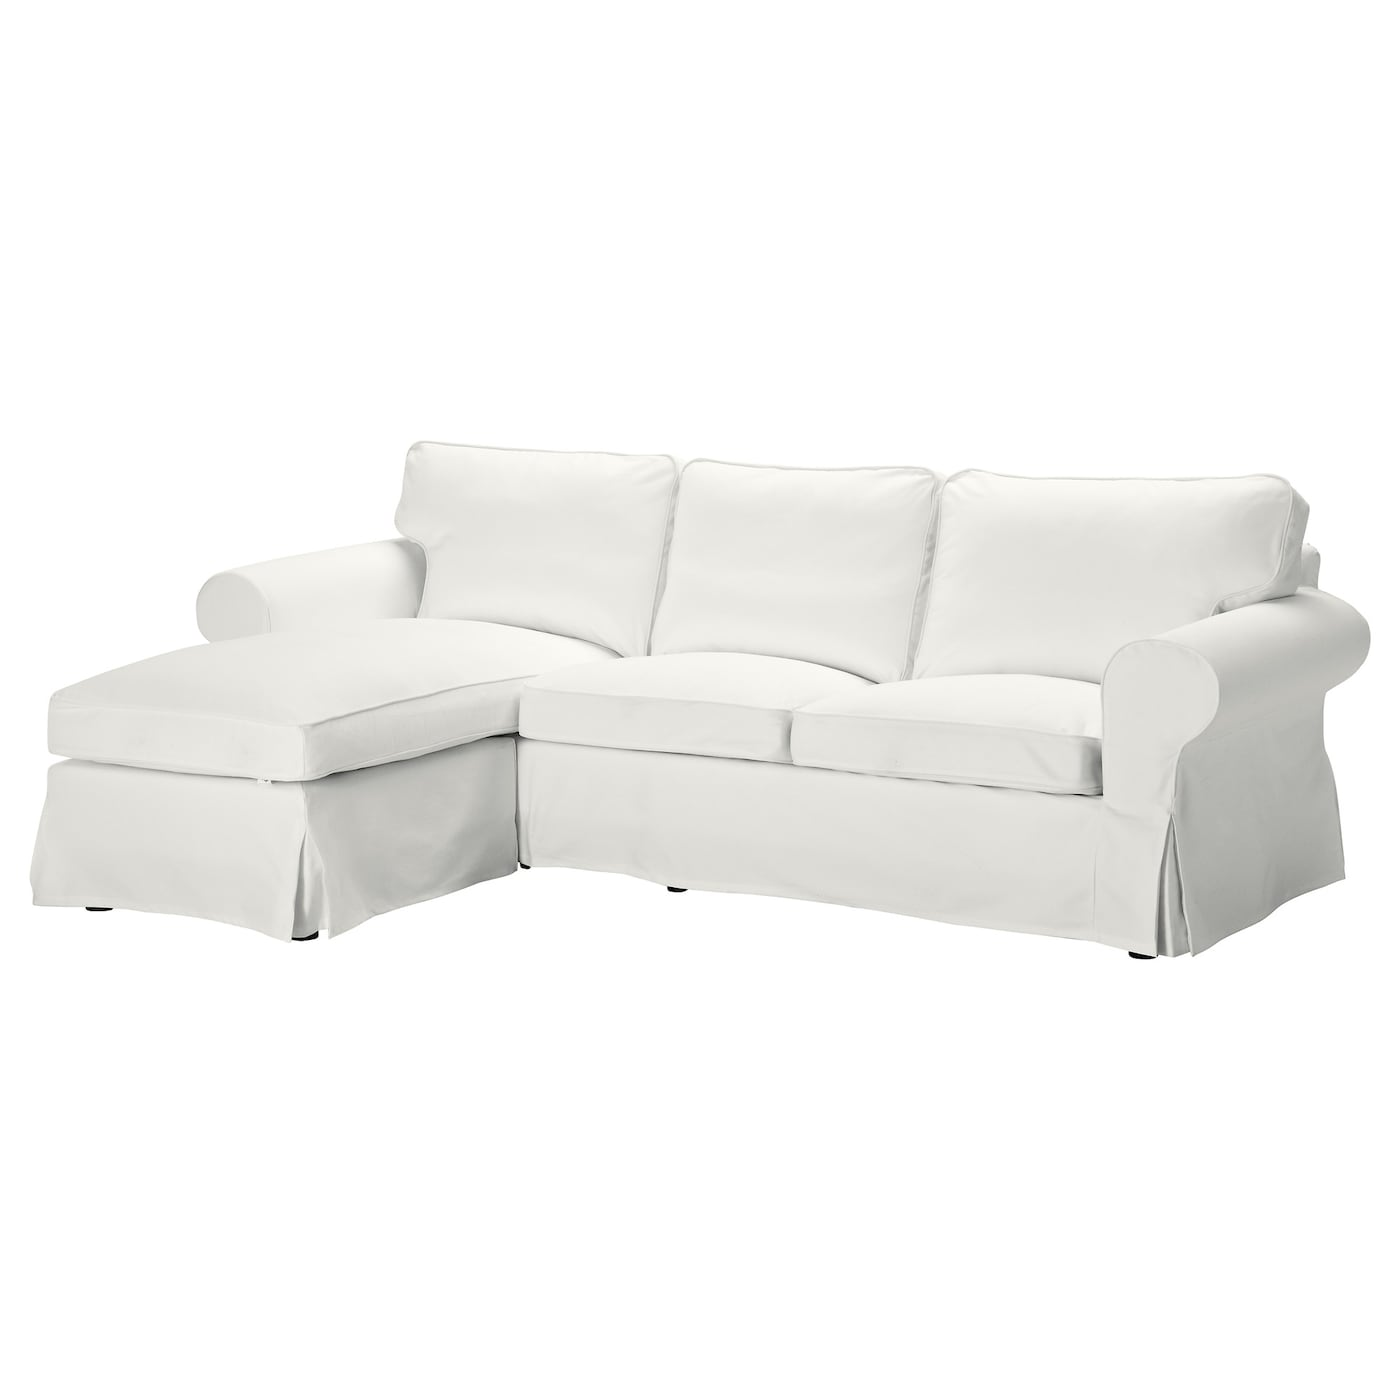 Ektorp two seat sofa and chaise longue blekinge white ikea for Chaise couch cover